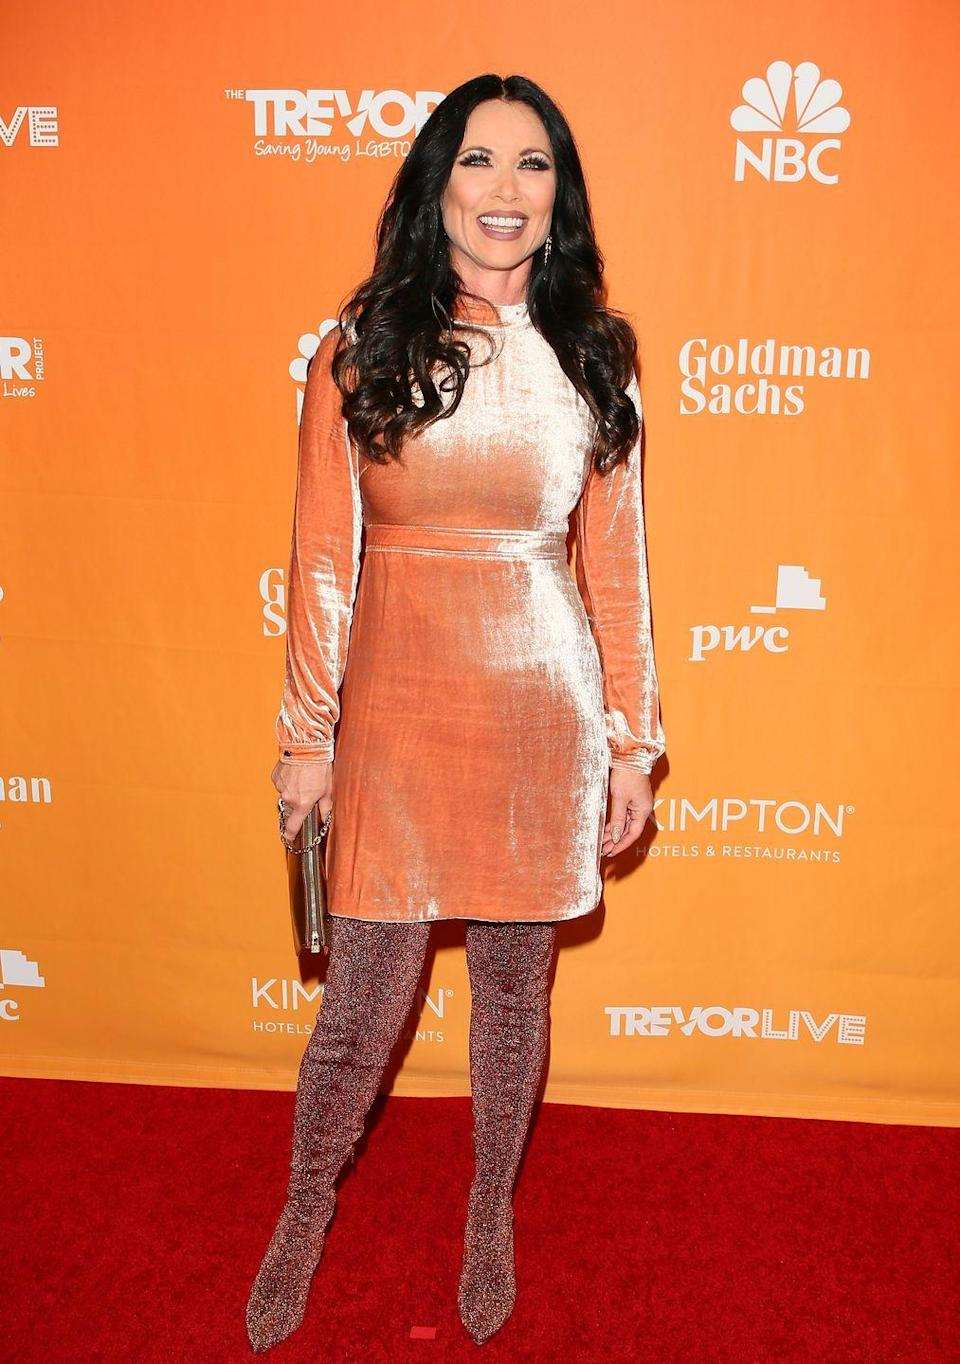 """<p>Perhaps one of the ugliest <em>Real Housewives </em>exits played out when original <em>Dallas</em> Housewife, LeeAnne Locken, made <a href=""""https://people.com/tv/rhod-finale-kary-brittingham-confronts-leeanne-locken-about-chirpy-mexican-comment/"""" rel=""""nofollow noopener"""" target=""""_blank"""" data-ylk=""""slk:racist comments"""" class=""""link rapid-noclick-resp"""">racist comments</a> toward her castmate Kary Brittingham during a group trip to Thailand. LeeAnne was held accountable for her actions by her castmates, Andy Cohen and the <em>Housewives</em> fandom at the season 4 reunion, after which she bowed out.</p>"""